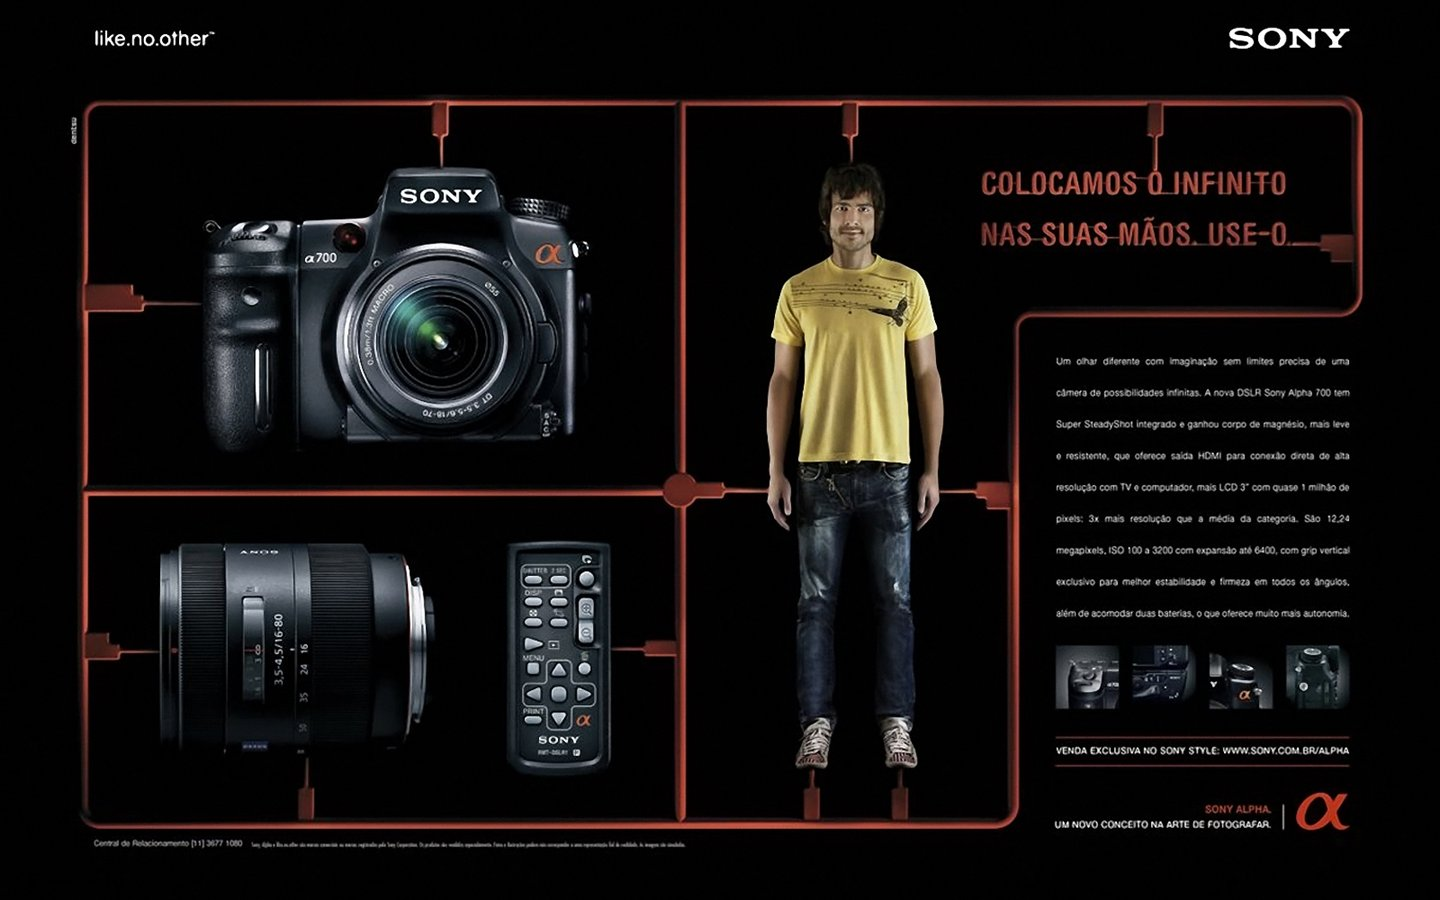 SONY digital camera creative wallpaper 31041